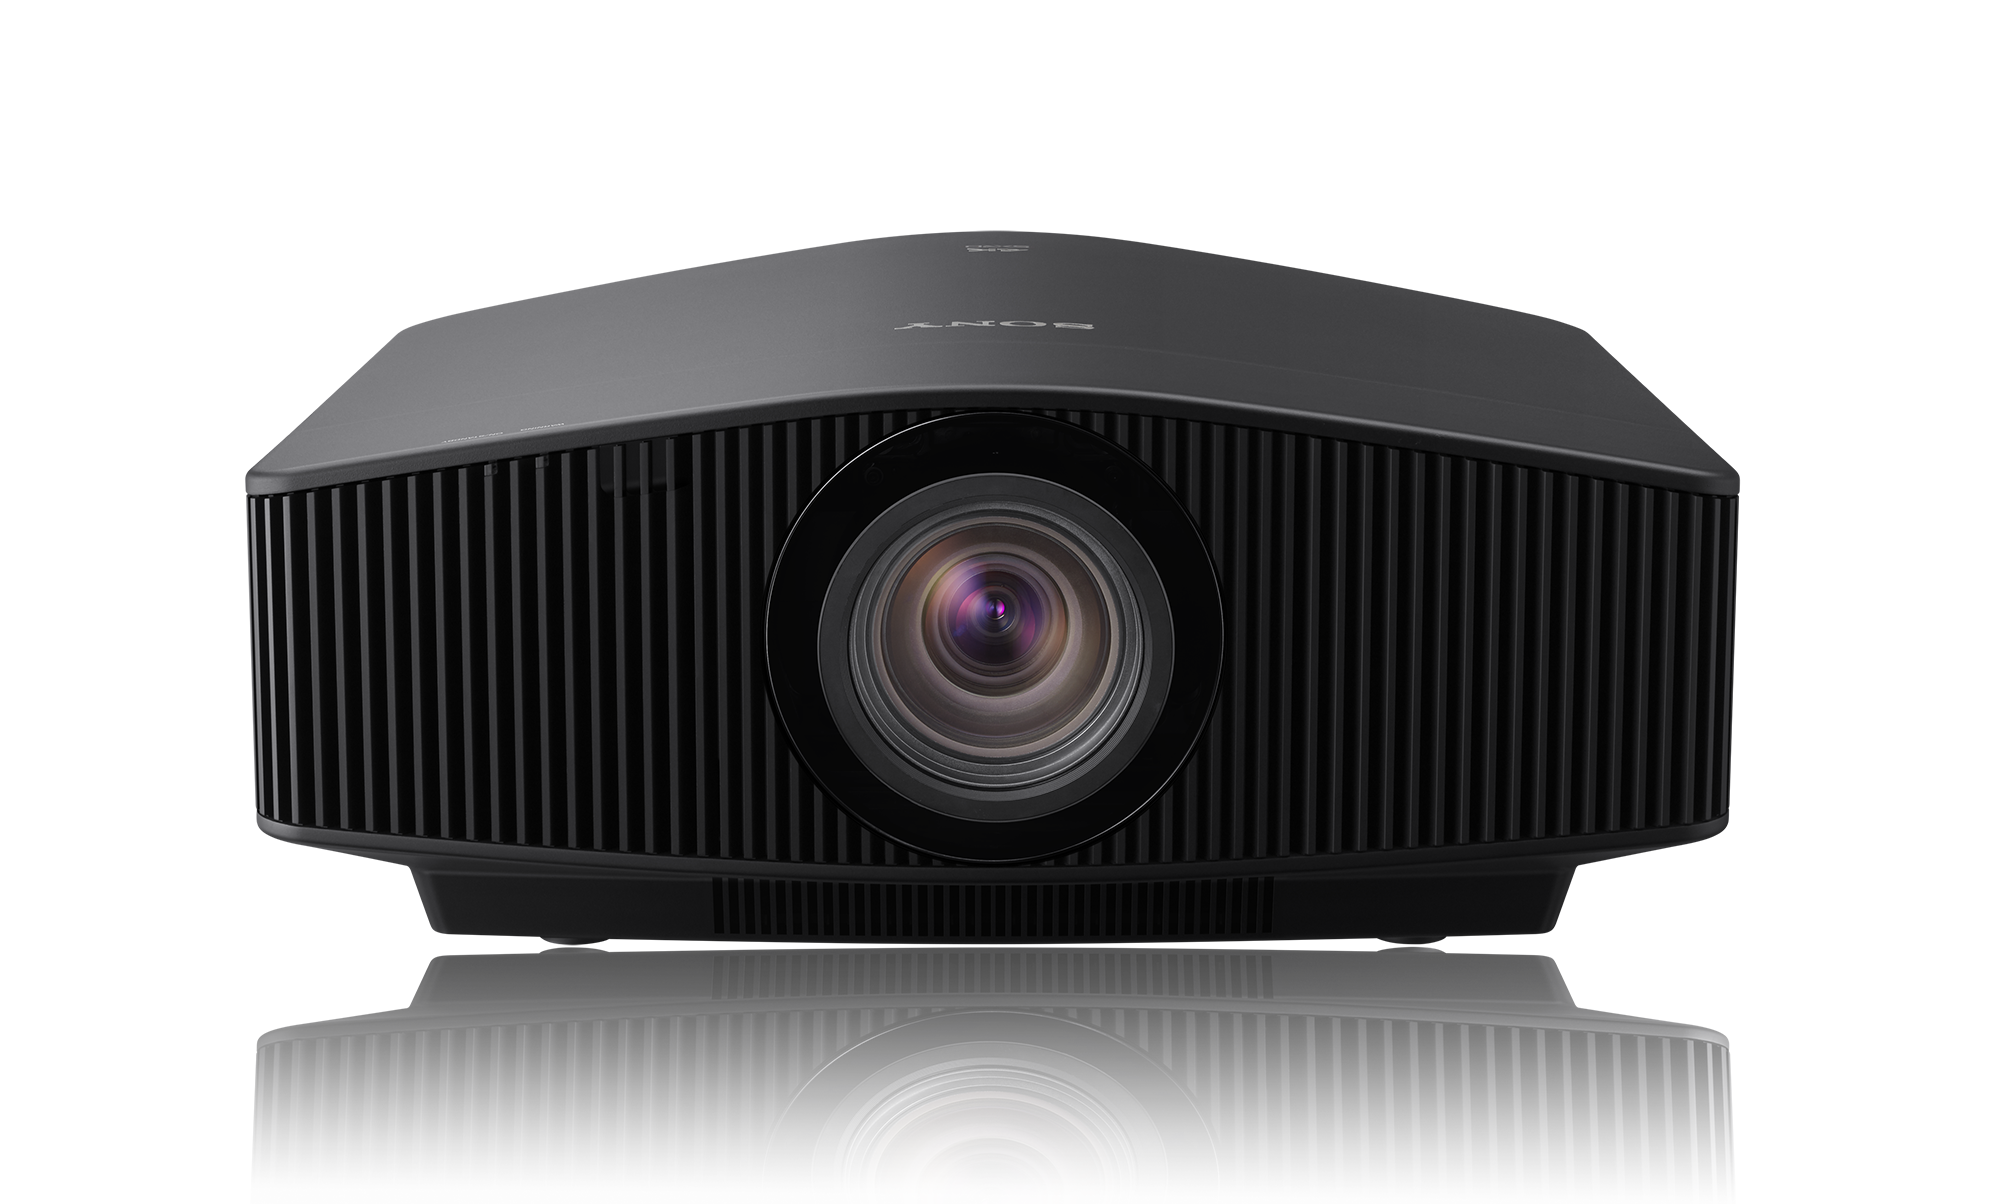 Front-facing view of the VPL-VW870ES home cinema projector